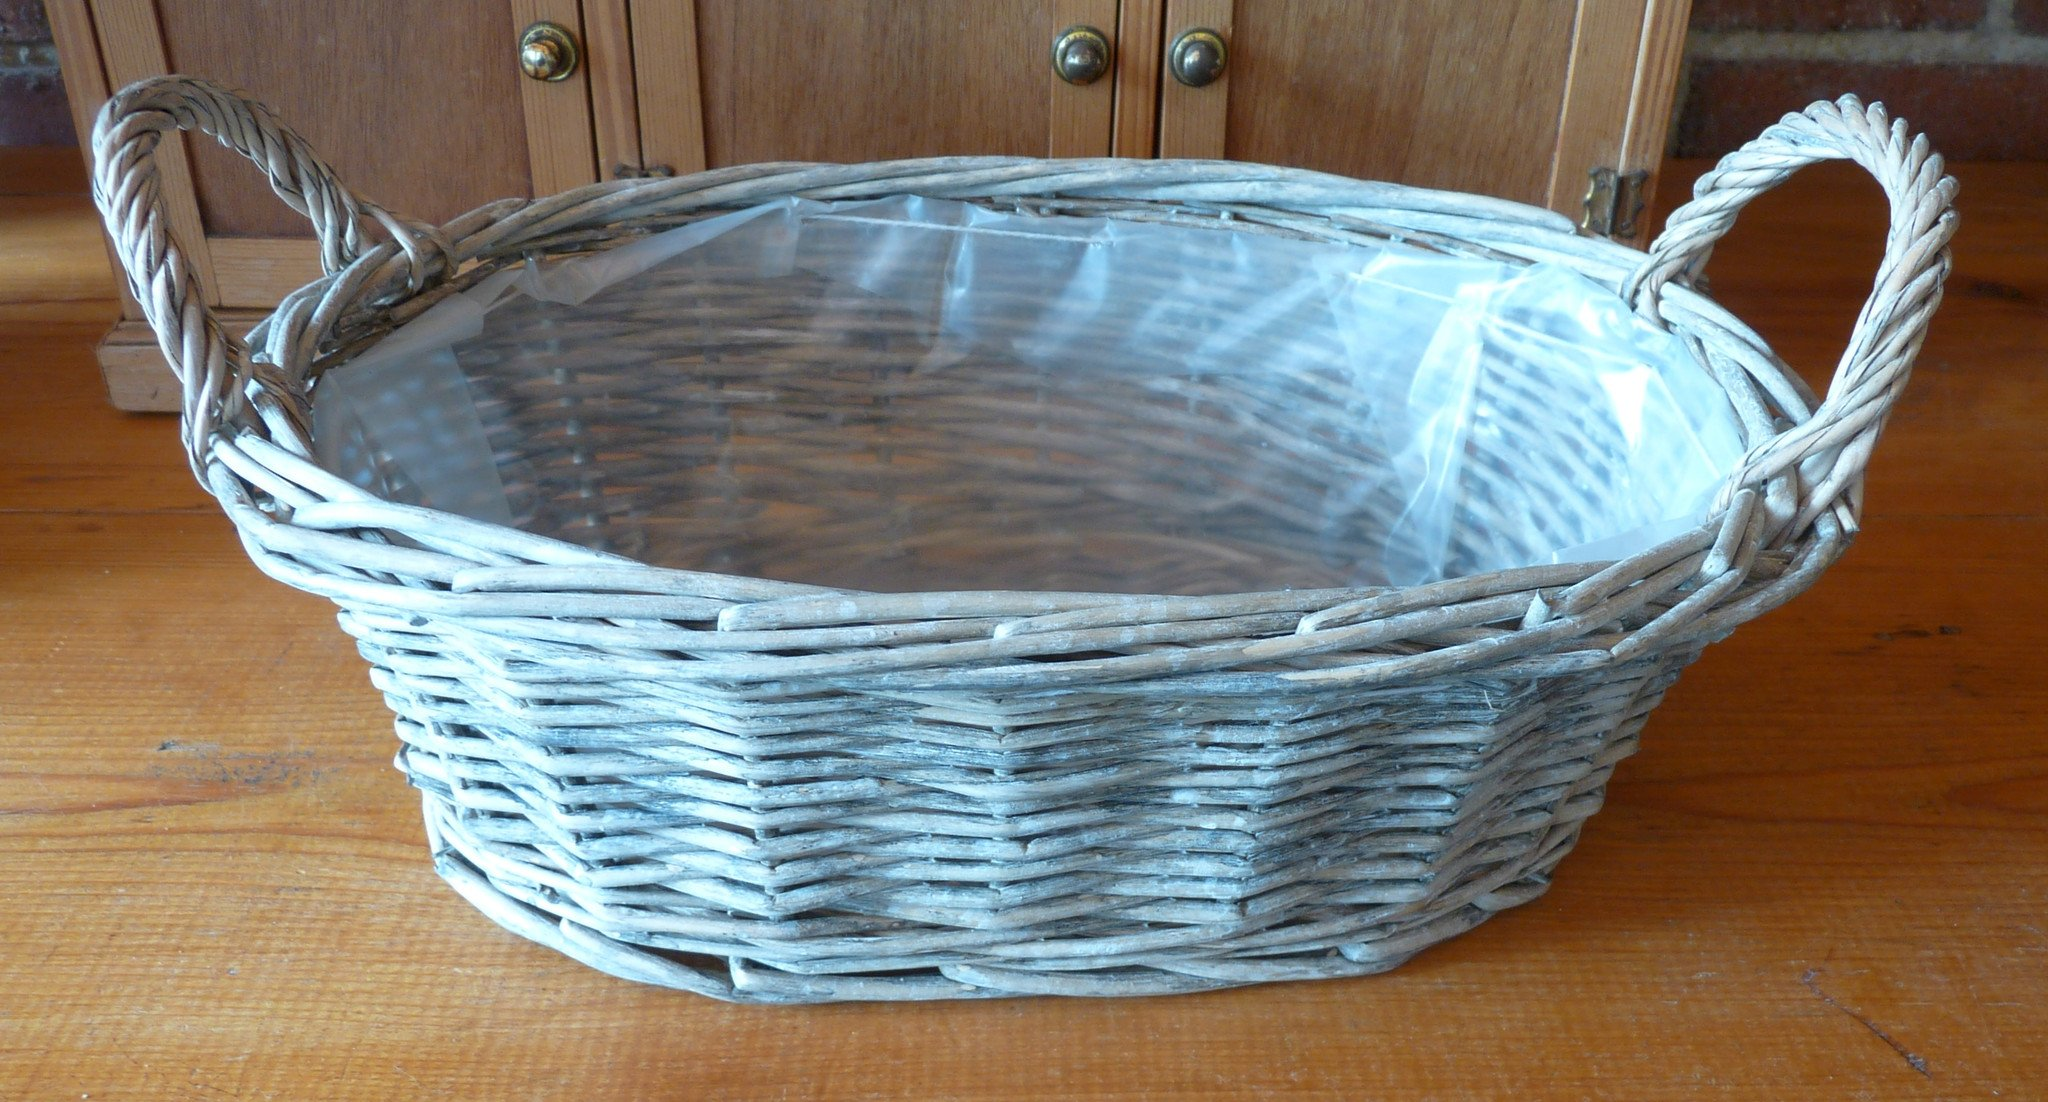 Oval basket with two handles